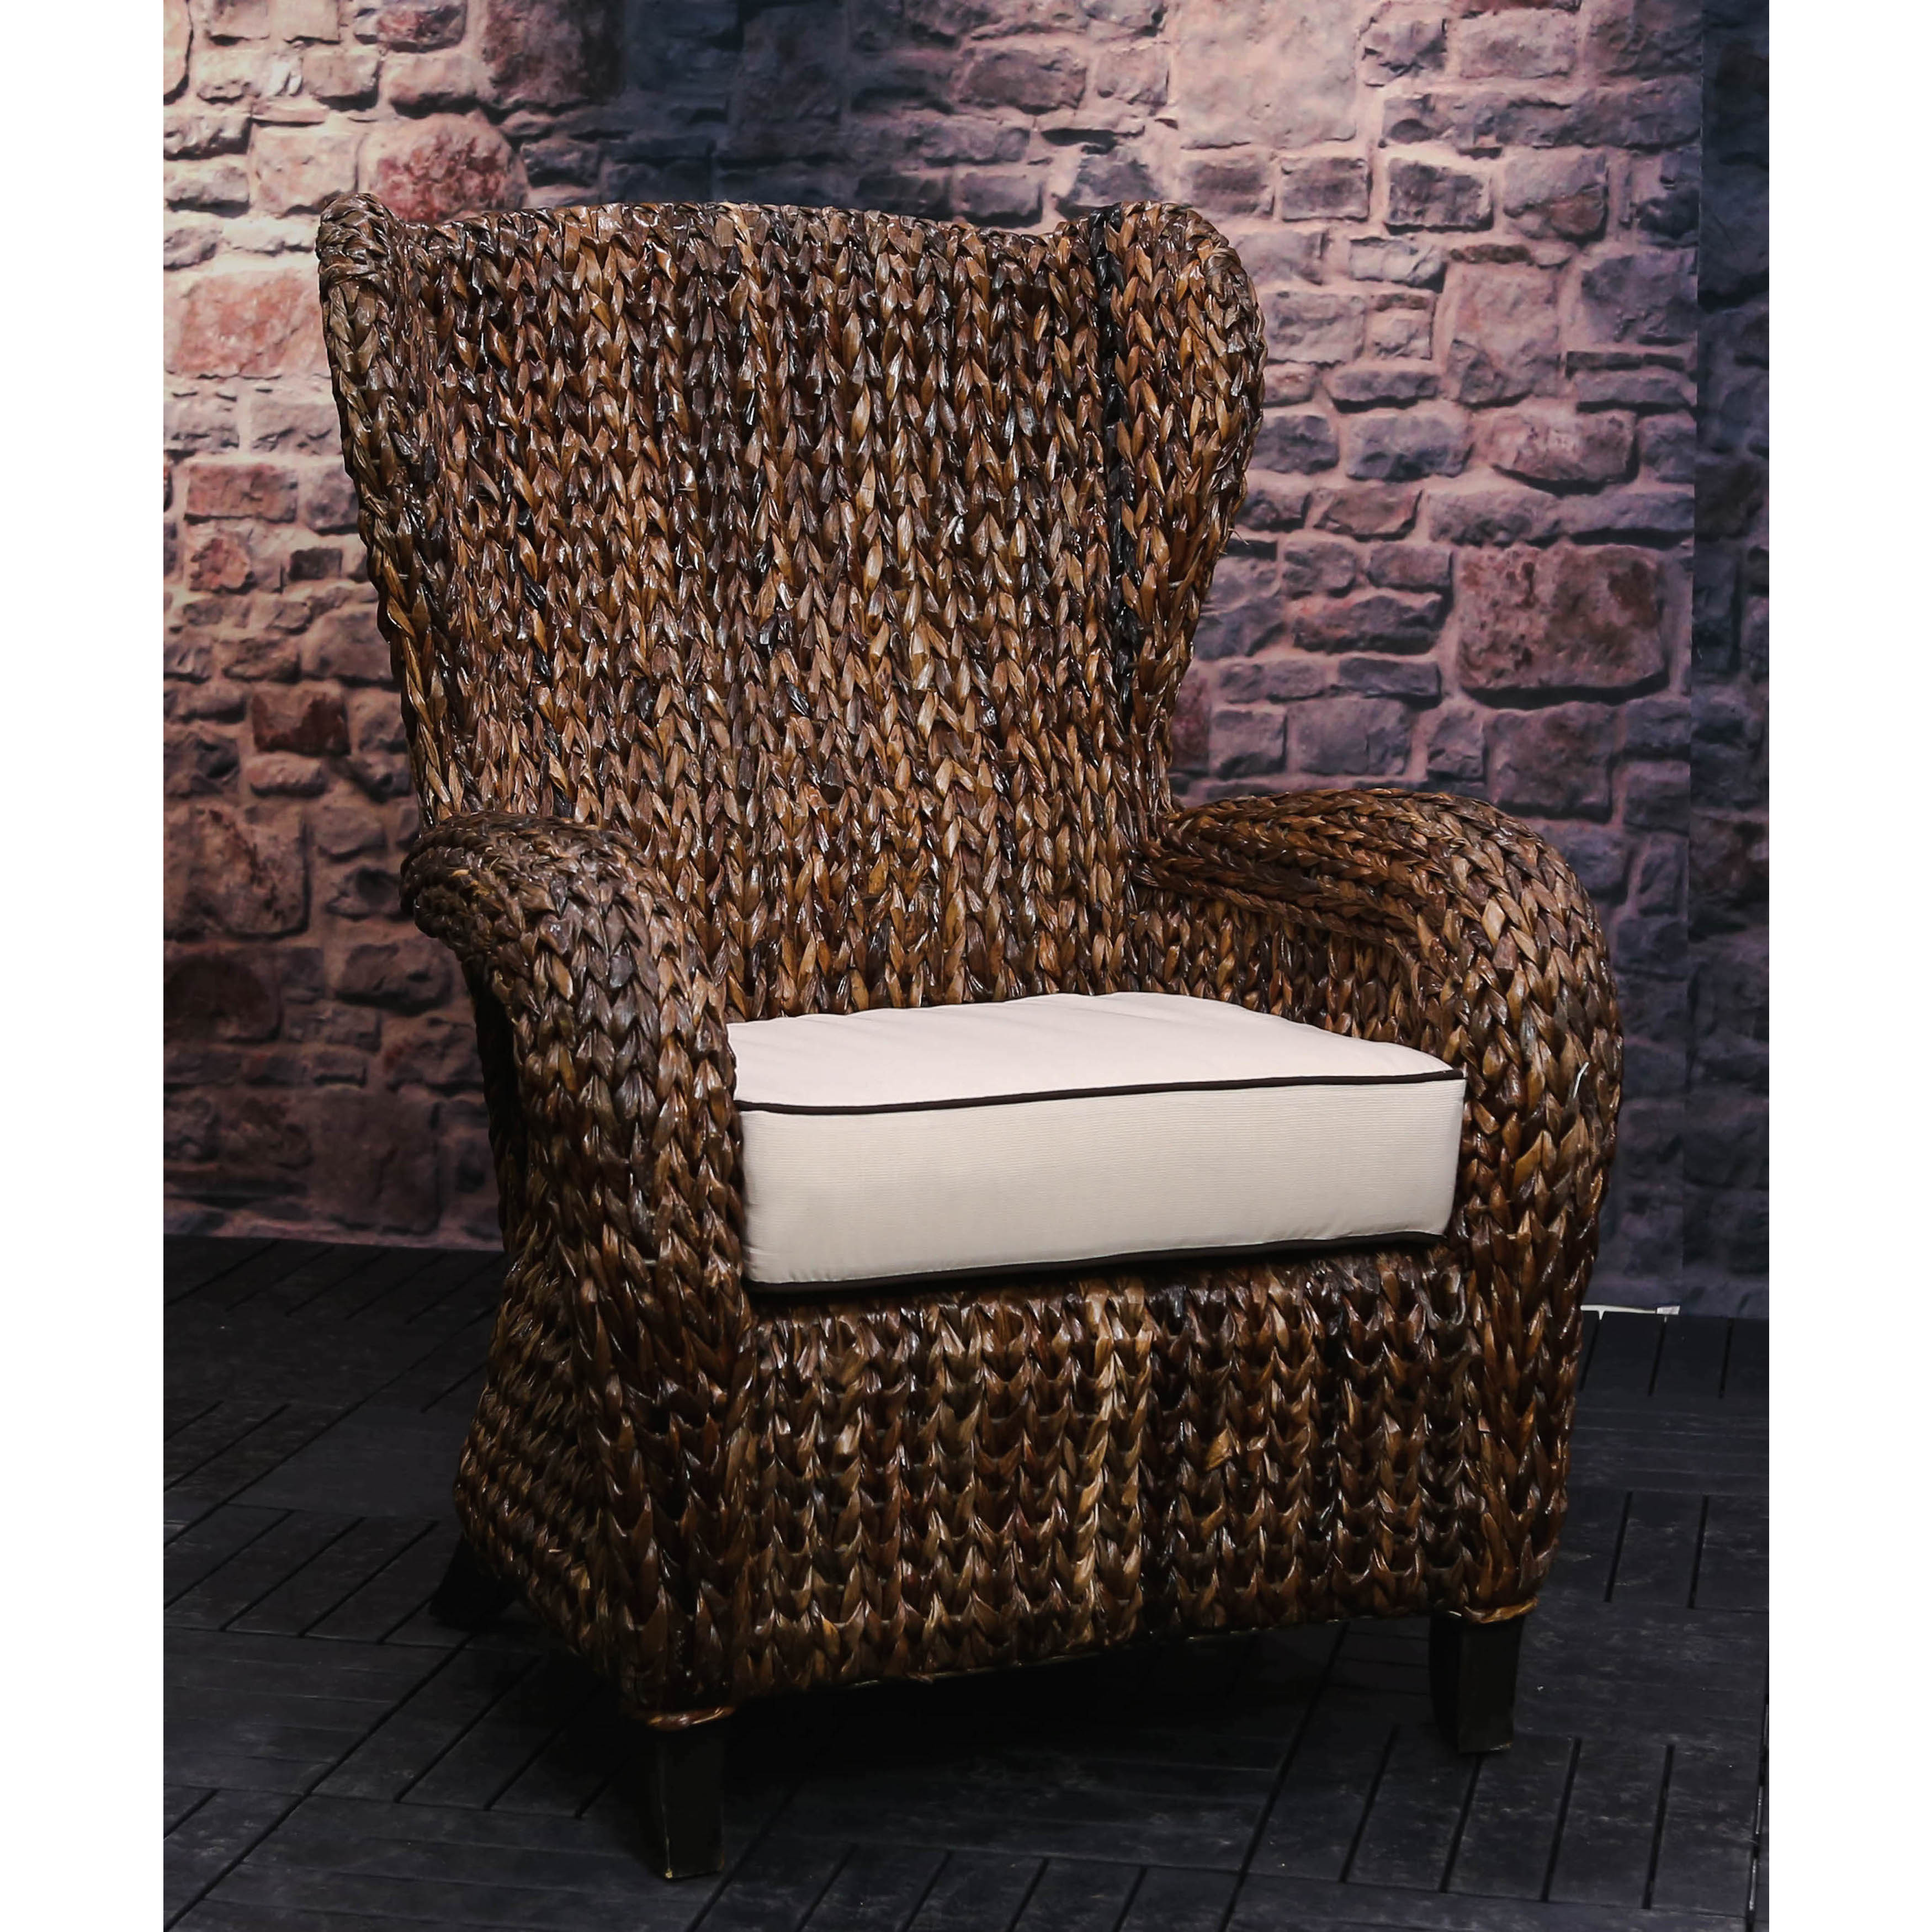 Rattan Lounge Chair Philippines Handmade Somette Rattan Indoor Outdoor Sloped Arm Wingback Club Chair Philippines